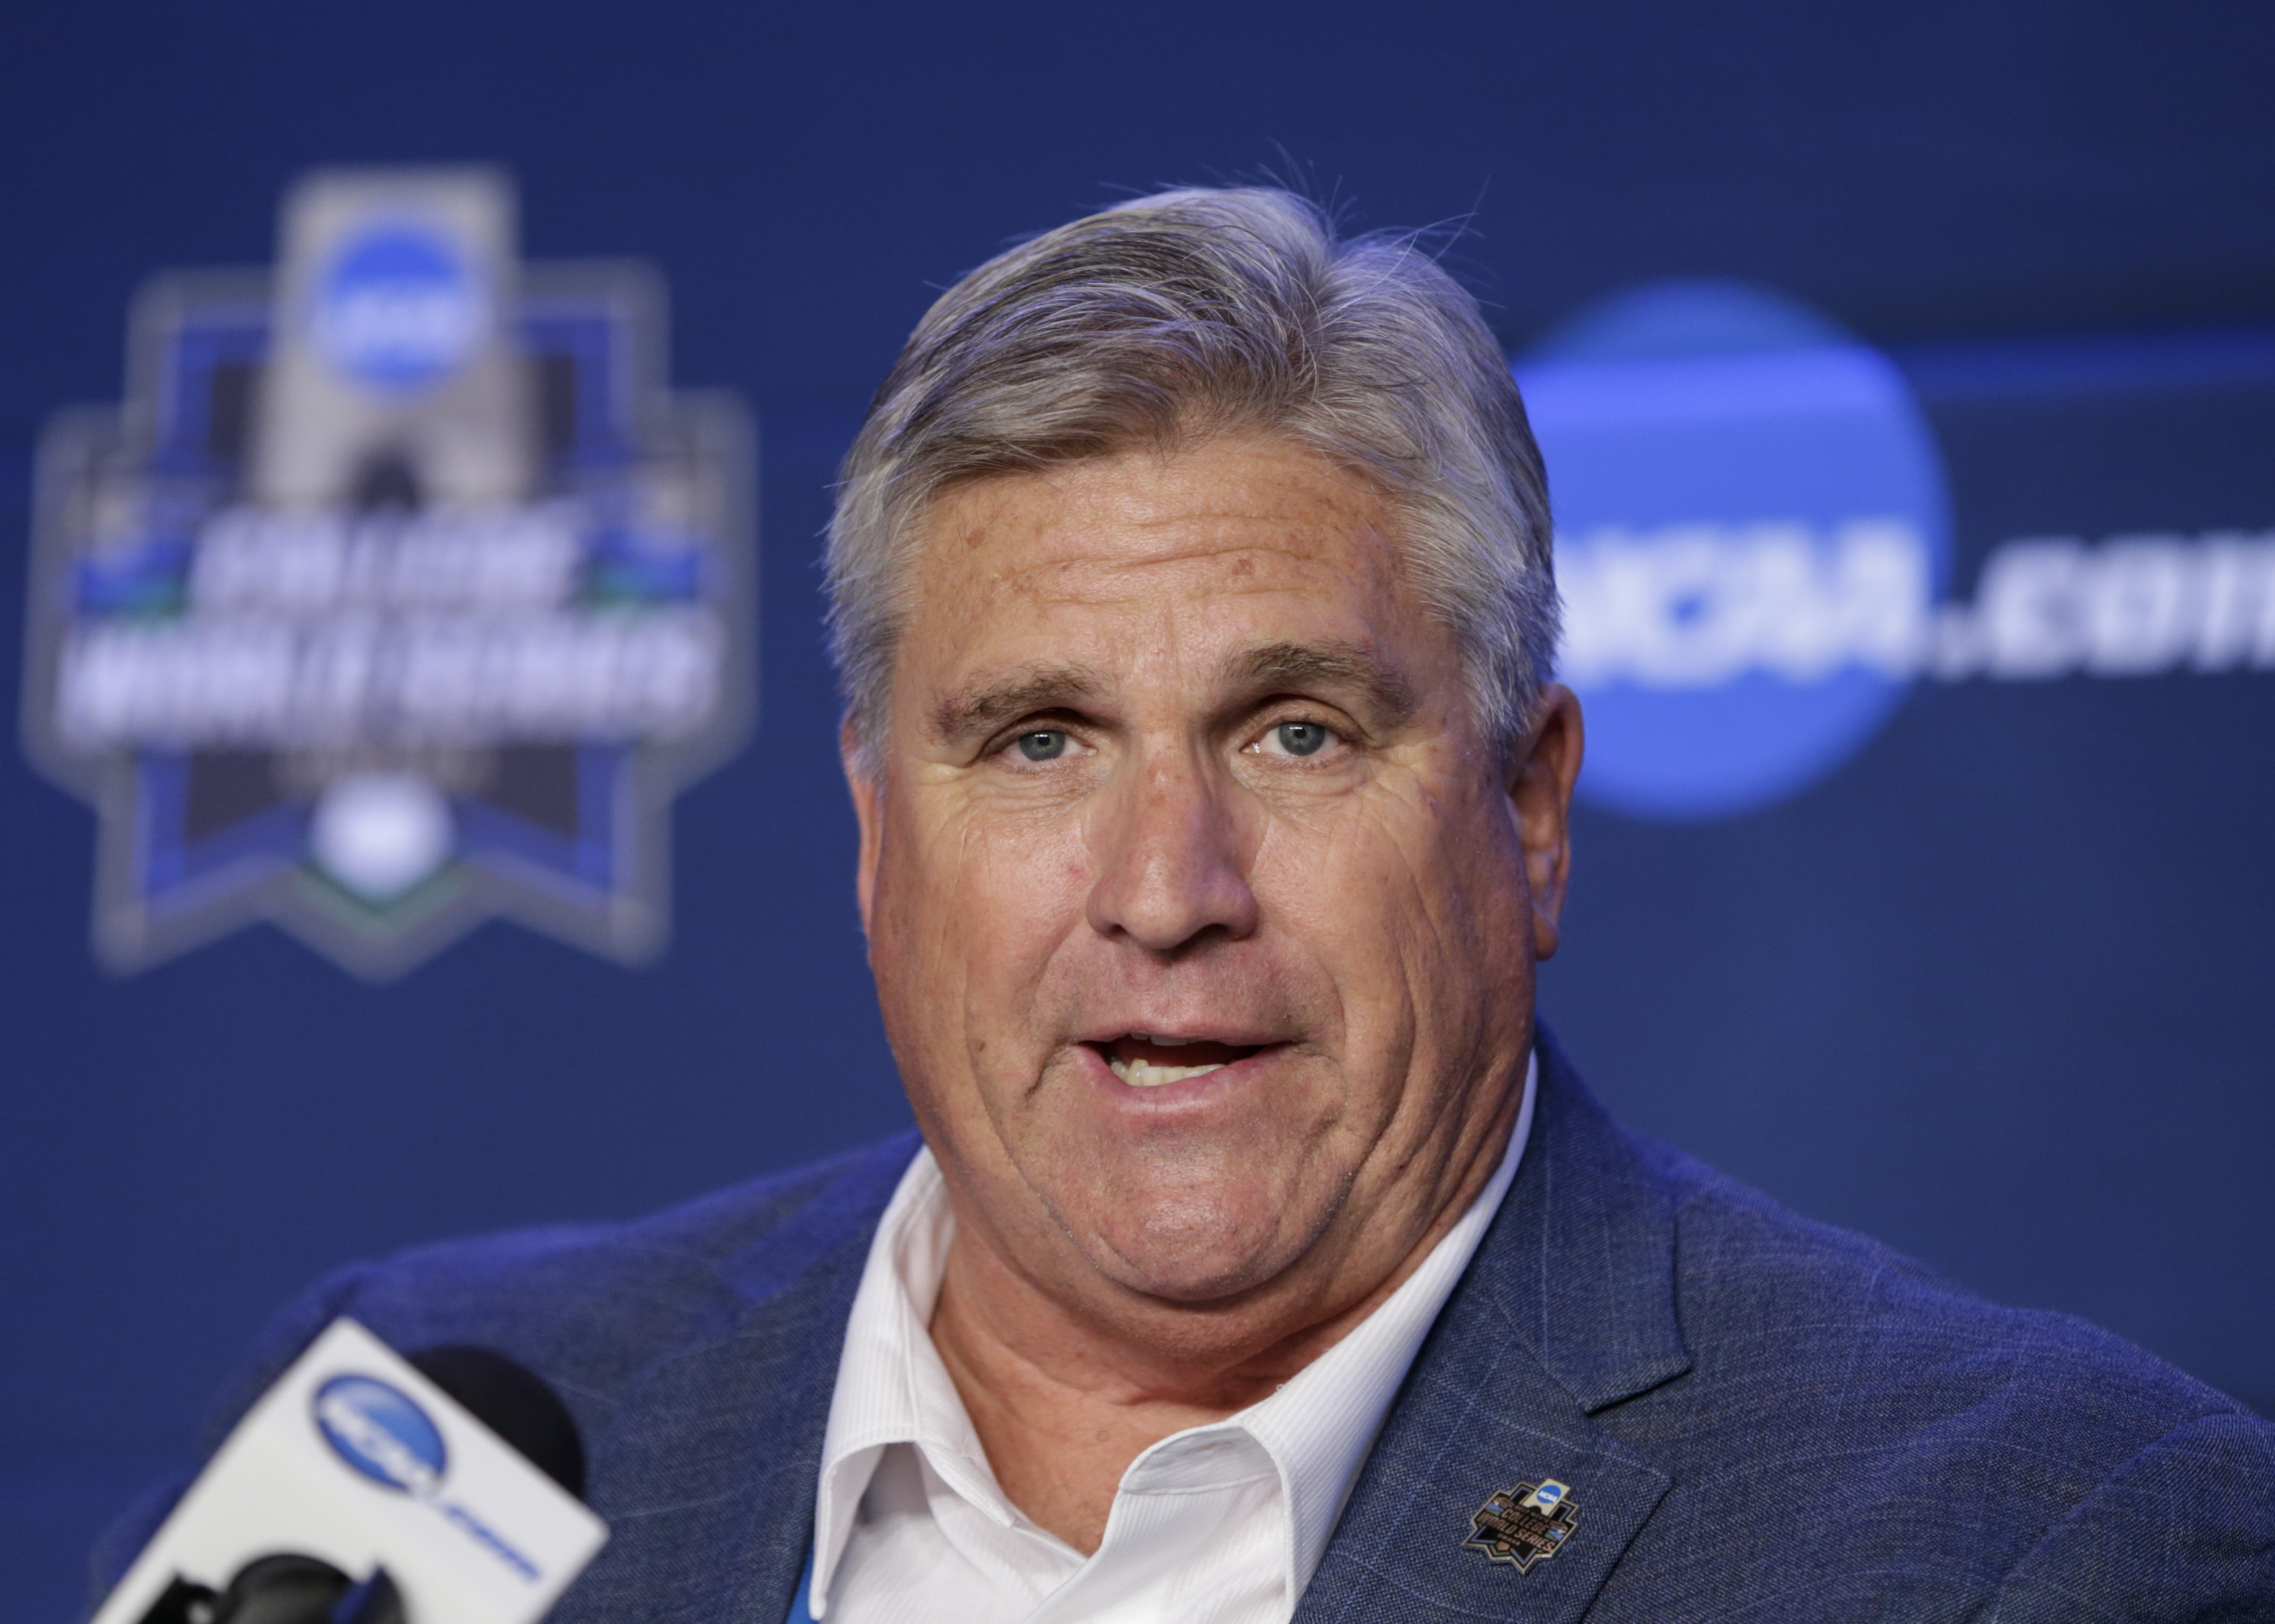 Ron Prettyman, NCAA's managing director of champions and alliances, speaks during a news conference in Omaha, Neb., Friday, June 16, 2017. Prettyman said in an interview with the Associated Press that the NCAA had no input on whether Oregon State's Luke Heimlich should participate or be with the NCAA college baseball team in Omaha. Last week it was revealed that when Heimlich was a teenager he pleaded guilty to molesting a 6-year-old girl. (AP Photo/Nati Harnik)